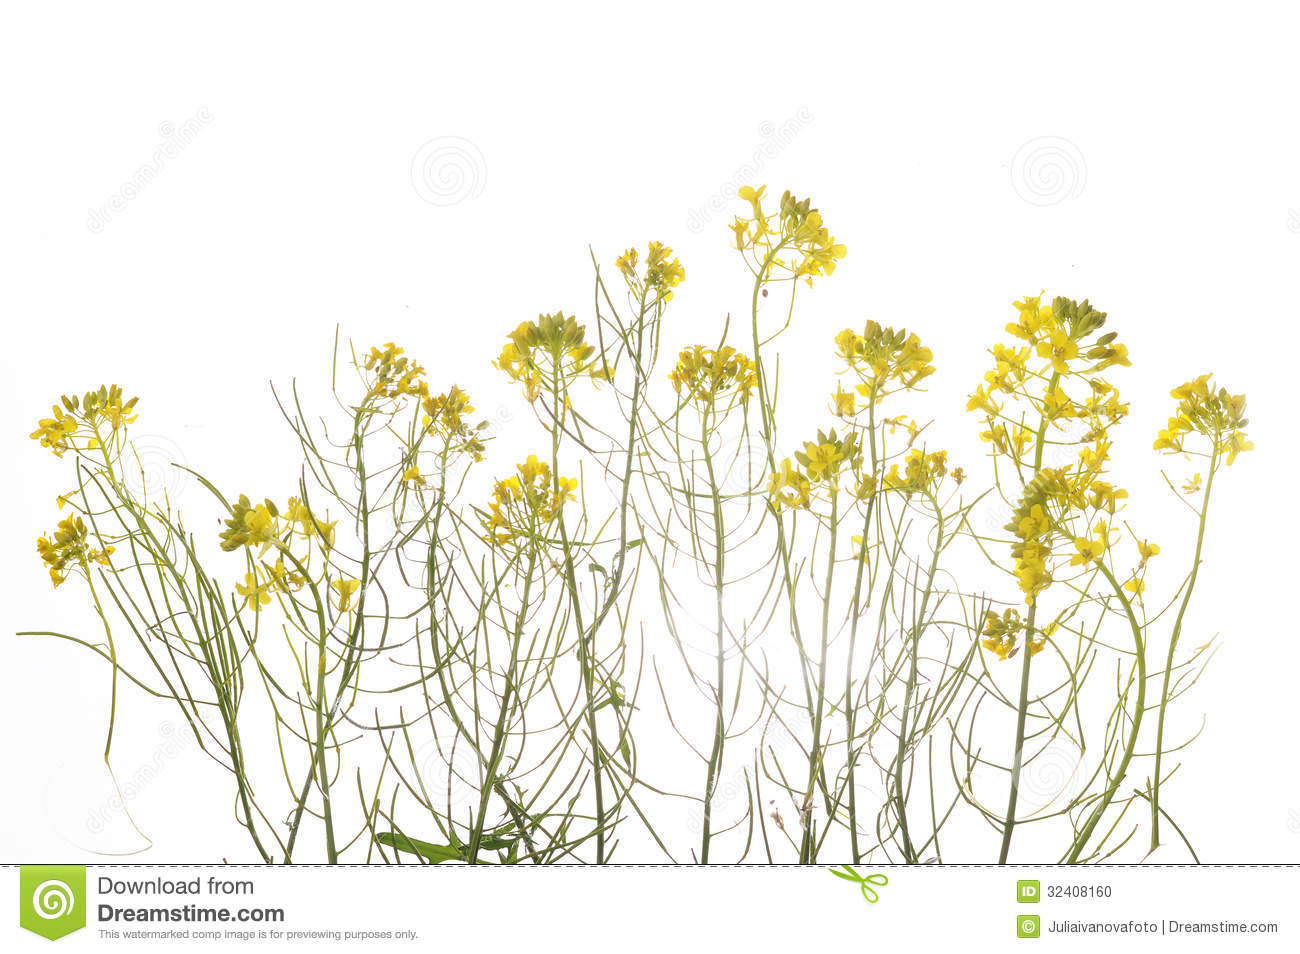 Green plant with yellow flowers stock photo image of indoors royalty free stock photo mightylinksfo Gallery